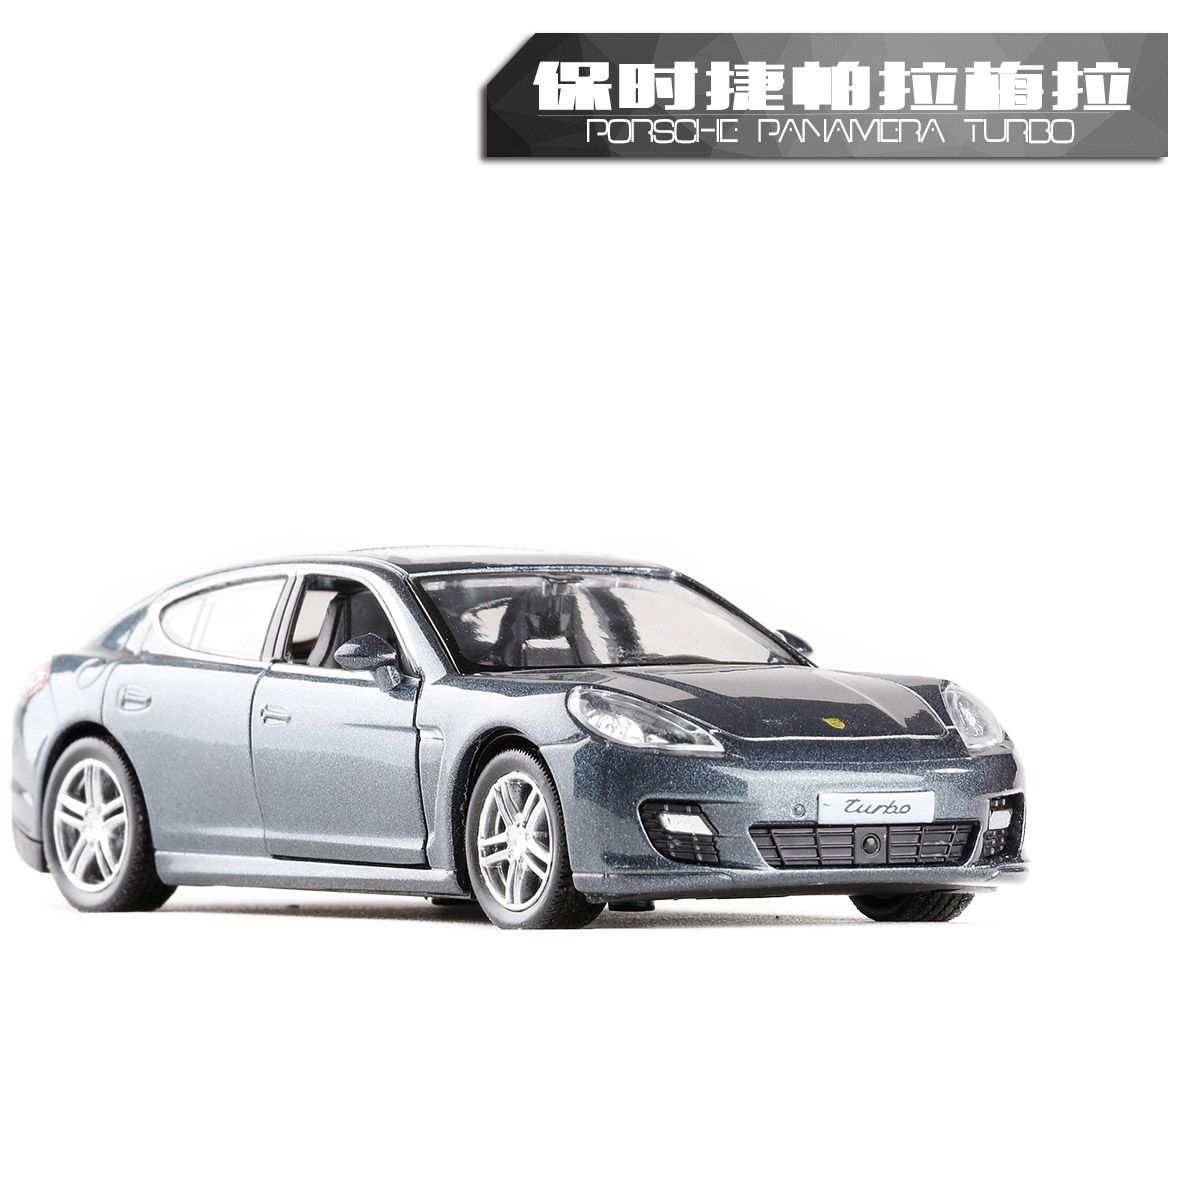 High Simulation RMZ City 1:36 Exquisite Metal Car Styling Porsch Panamera Limousine Alloy Diecast Pull Back Model Toy Car Gifts